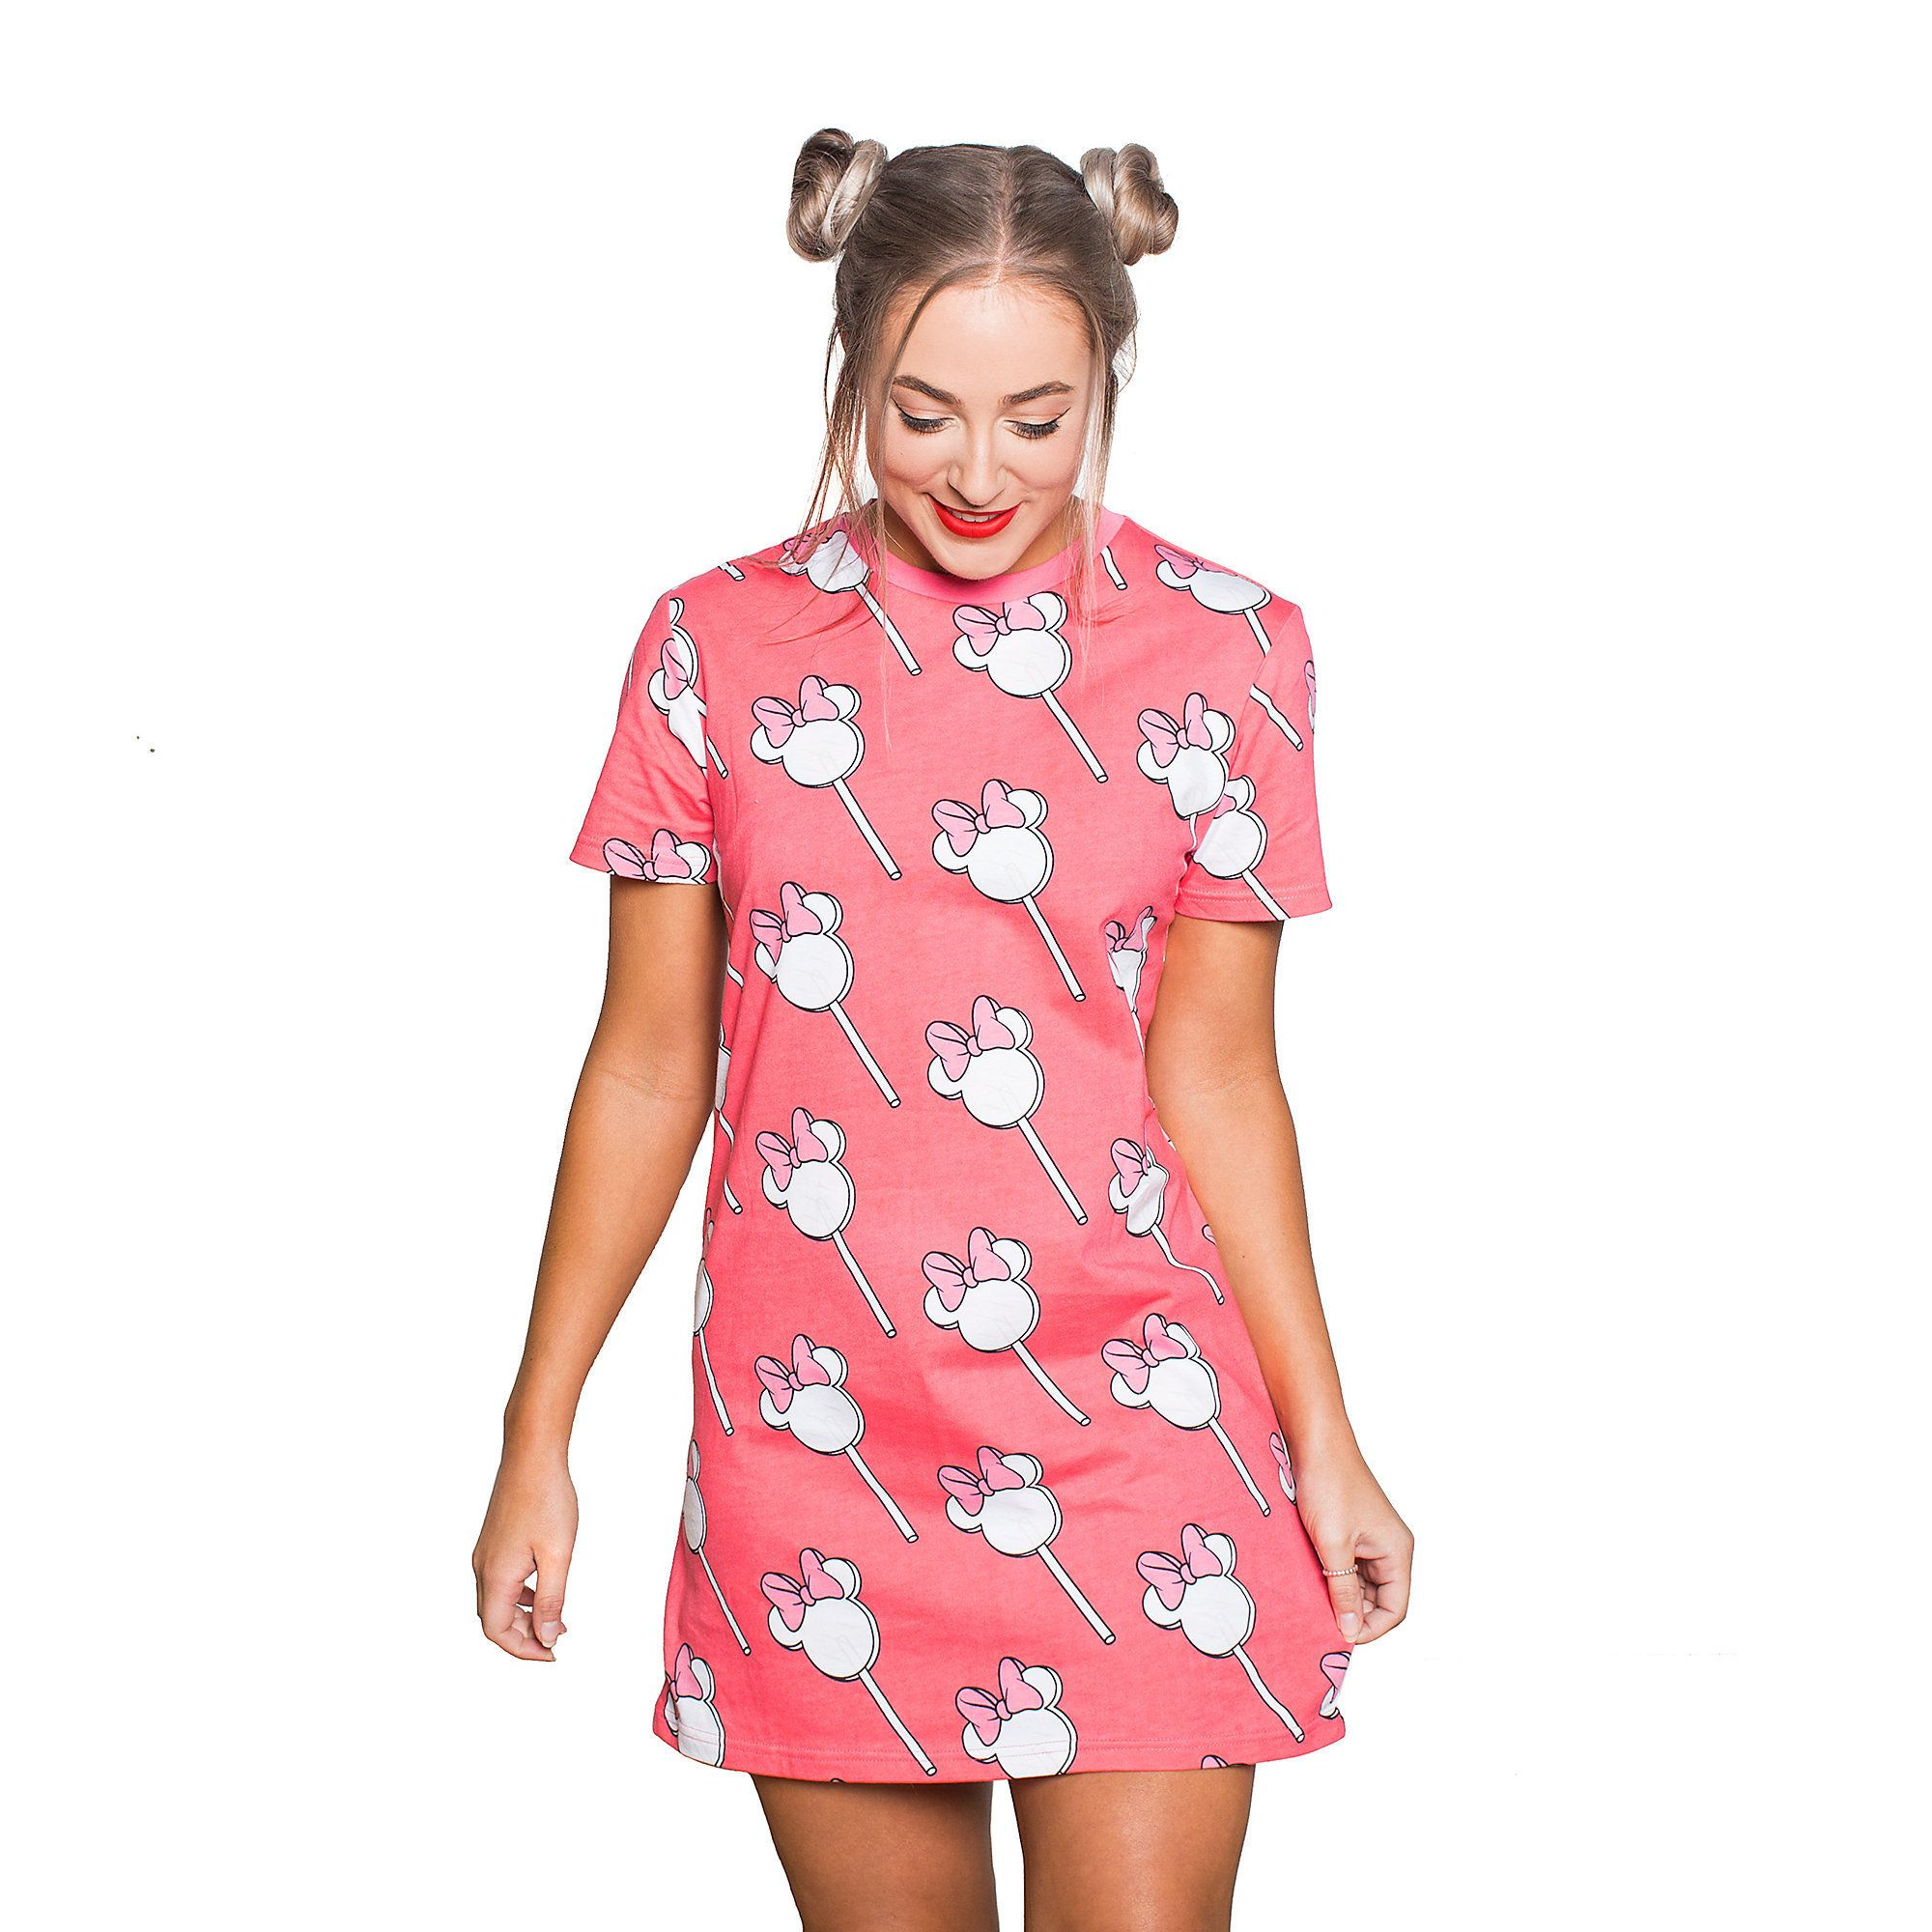 Minnie Mouse Lollipop TShirt Dress Adults by Cakeworthy